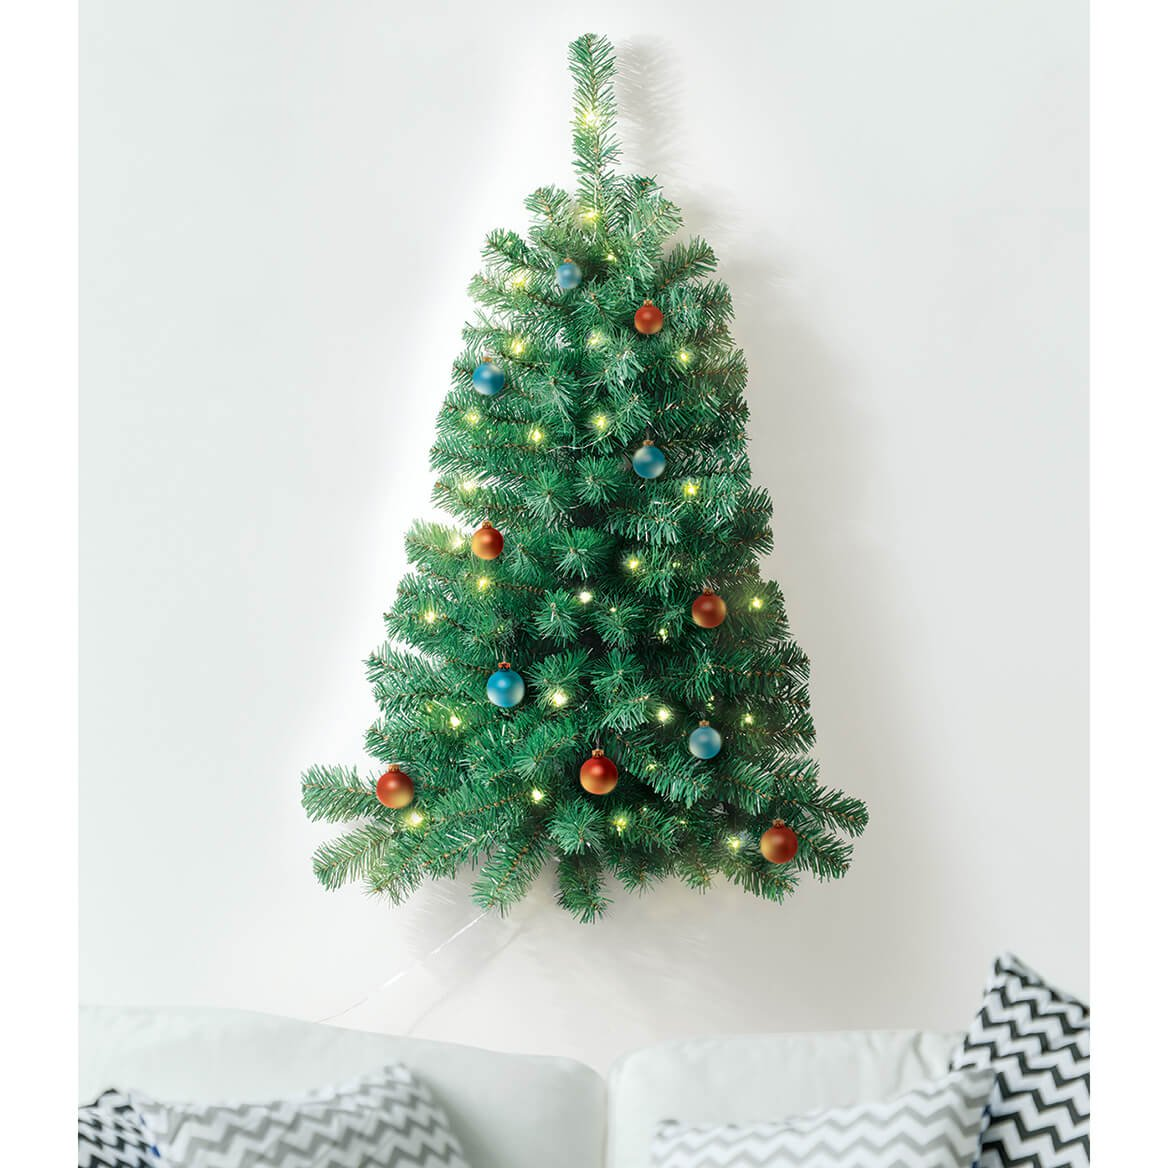 Wall Christmas Trees.Ideaworks Wall Mounted Christmas Tree Lighted And 3 Feet Tall